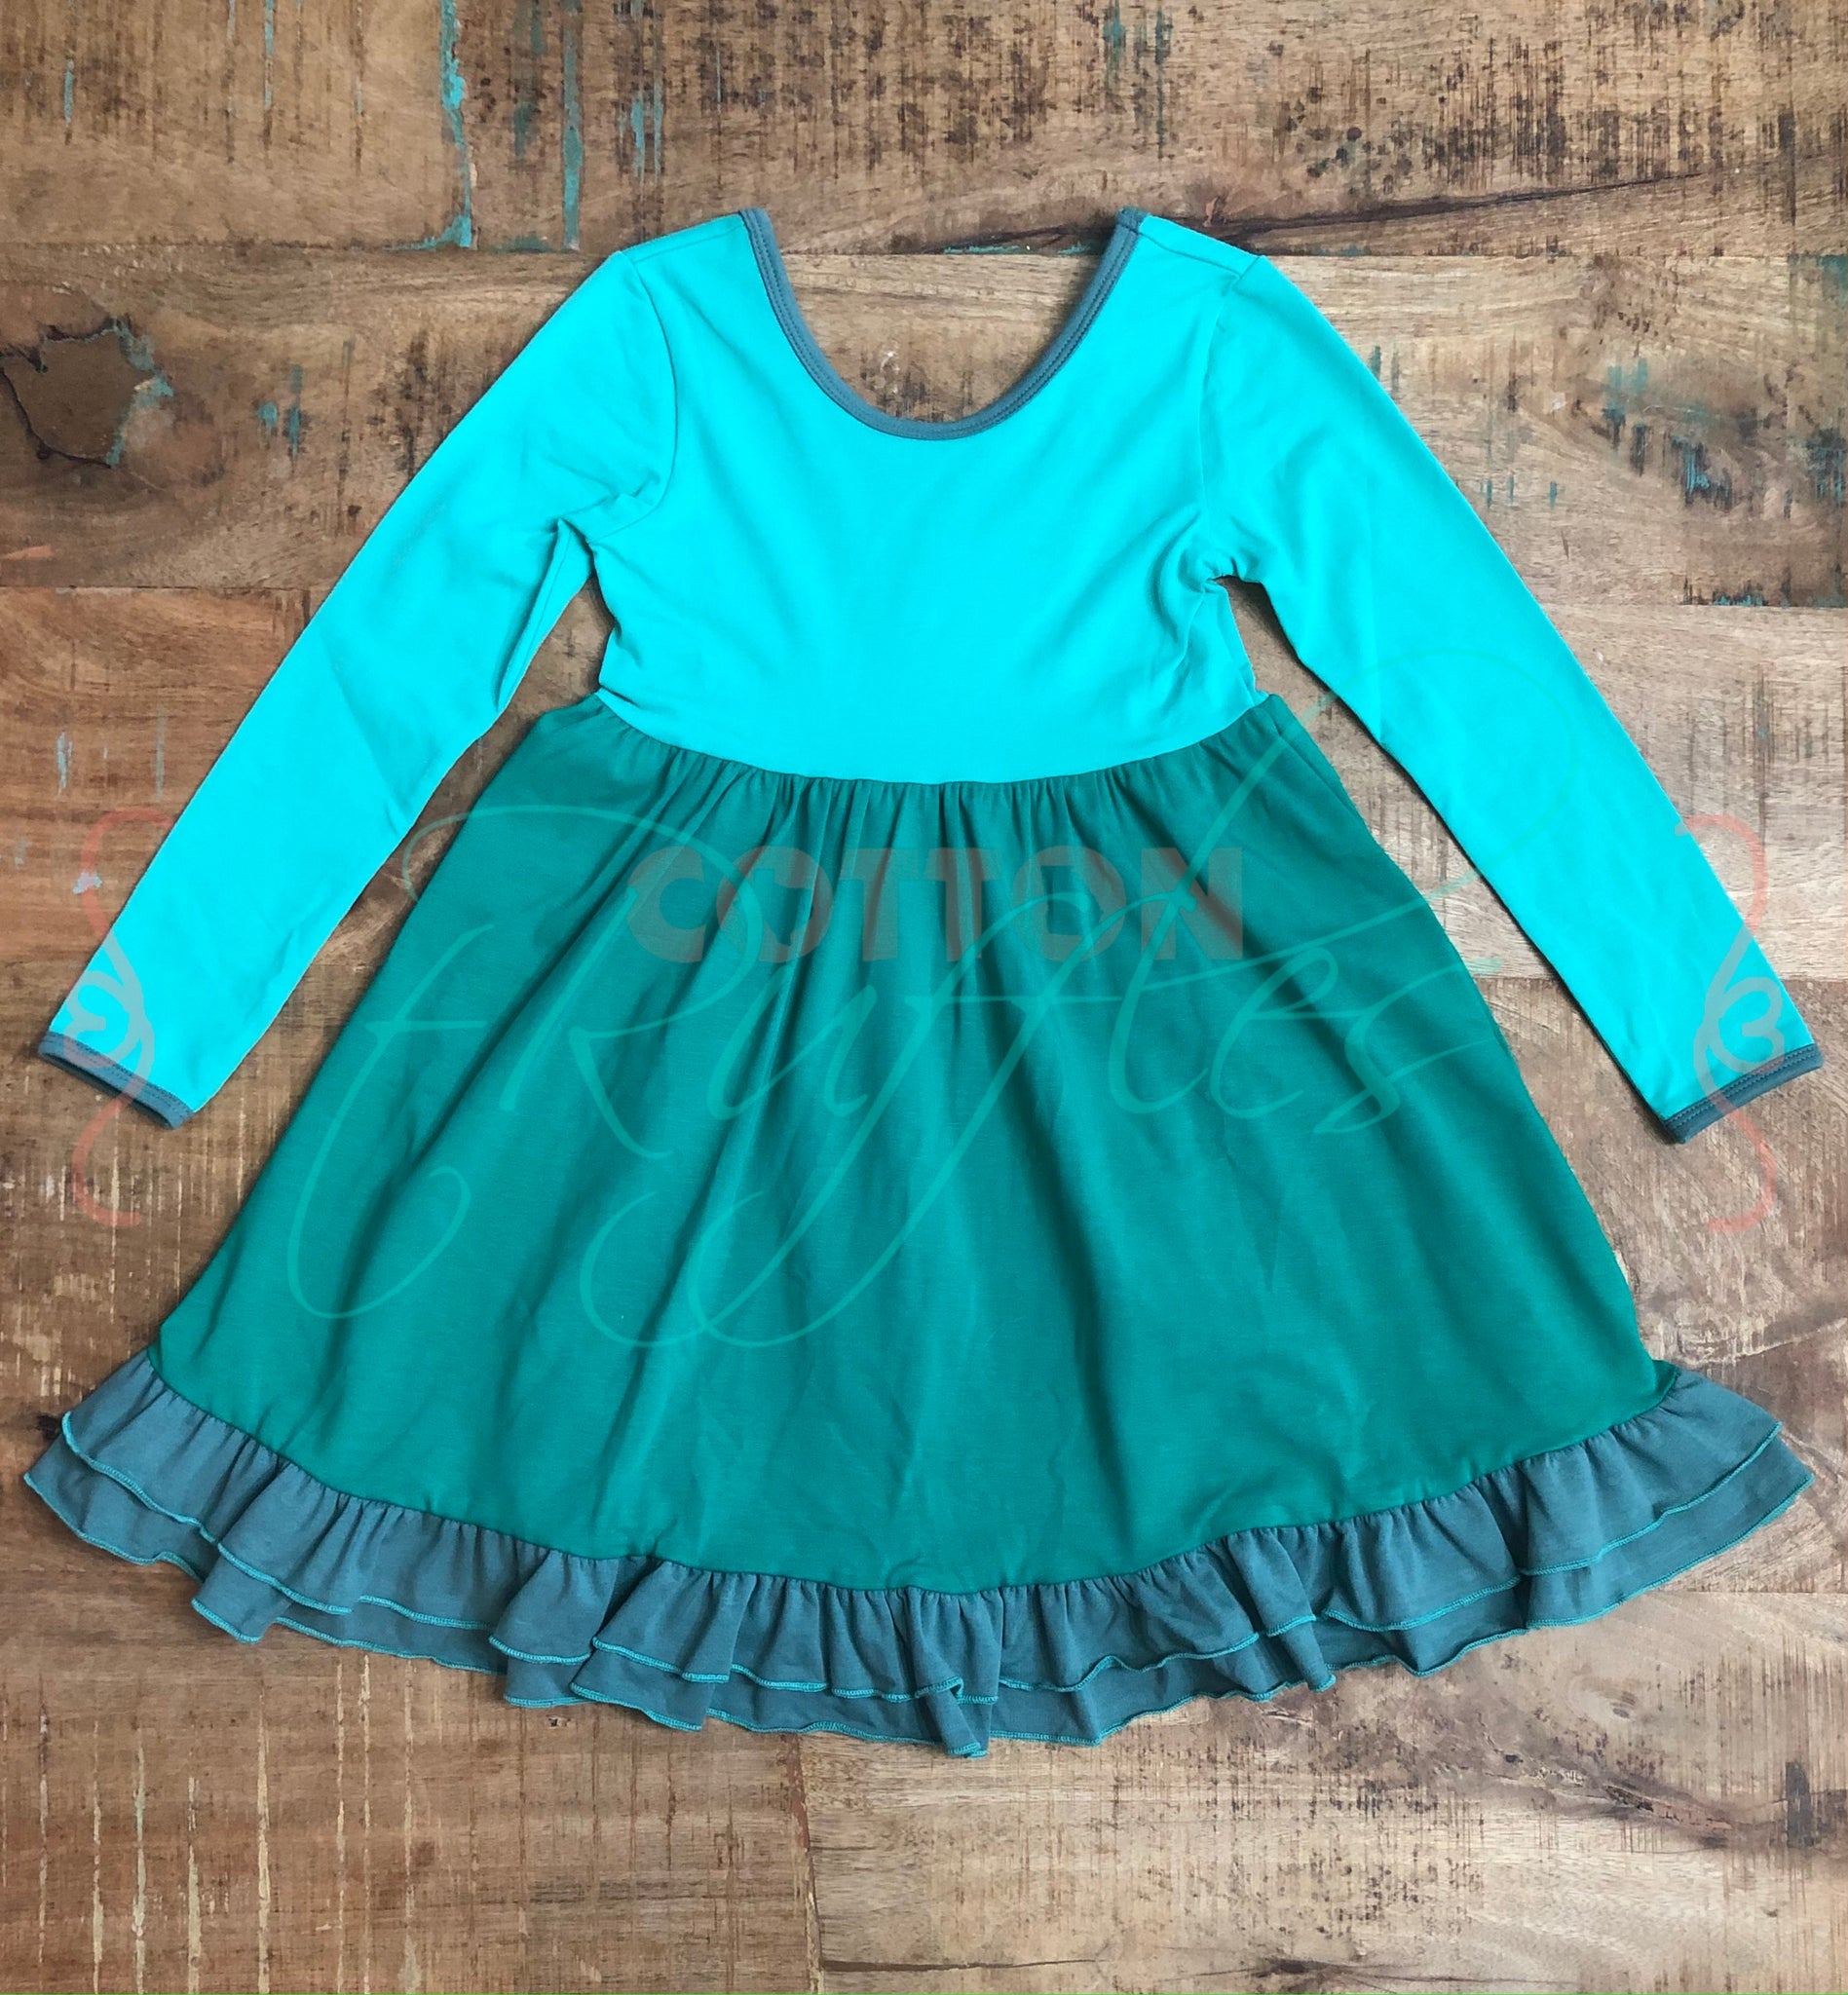 The Twirling Ali Dress